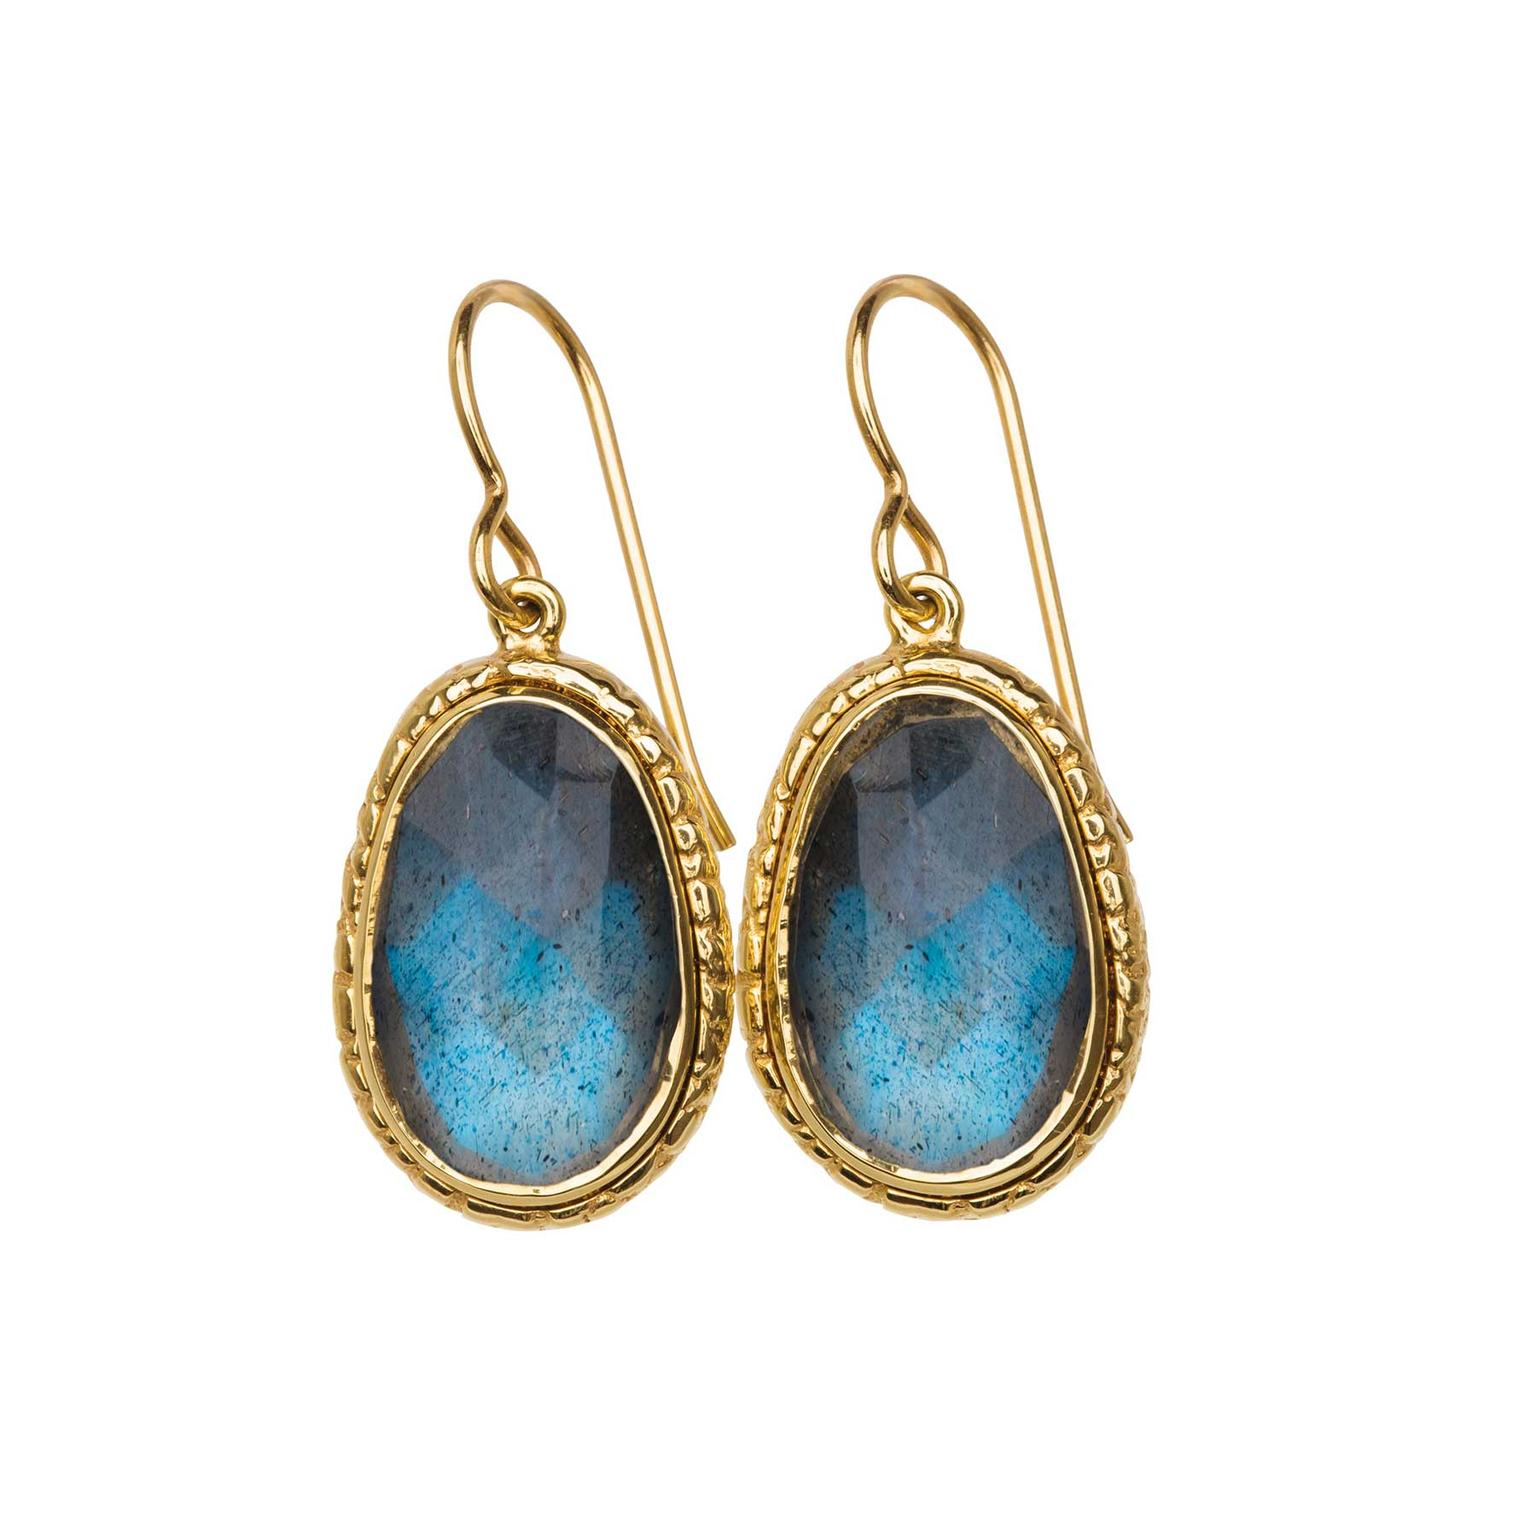 Susan Wheeler blue labradorite earrings